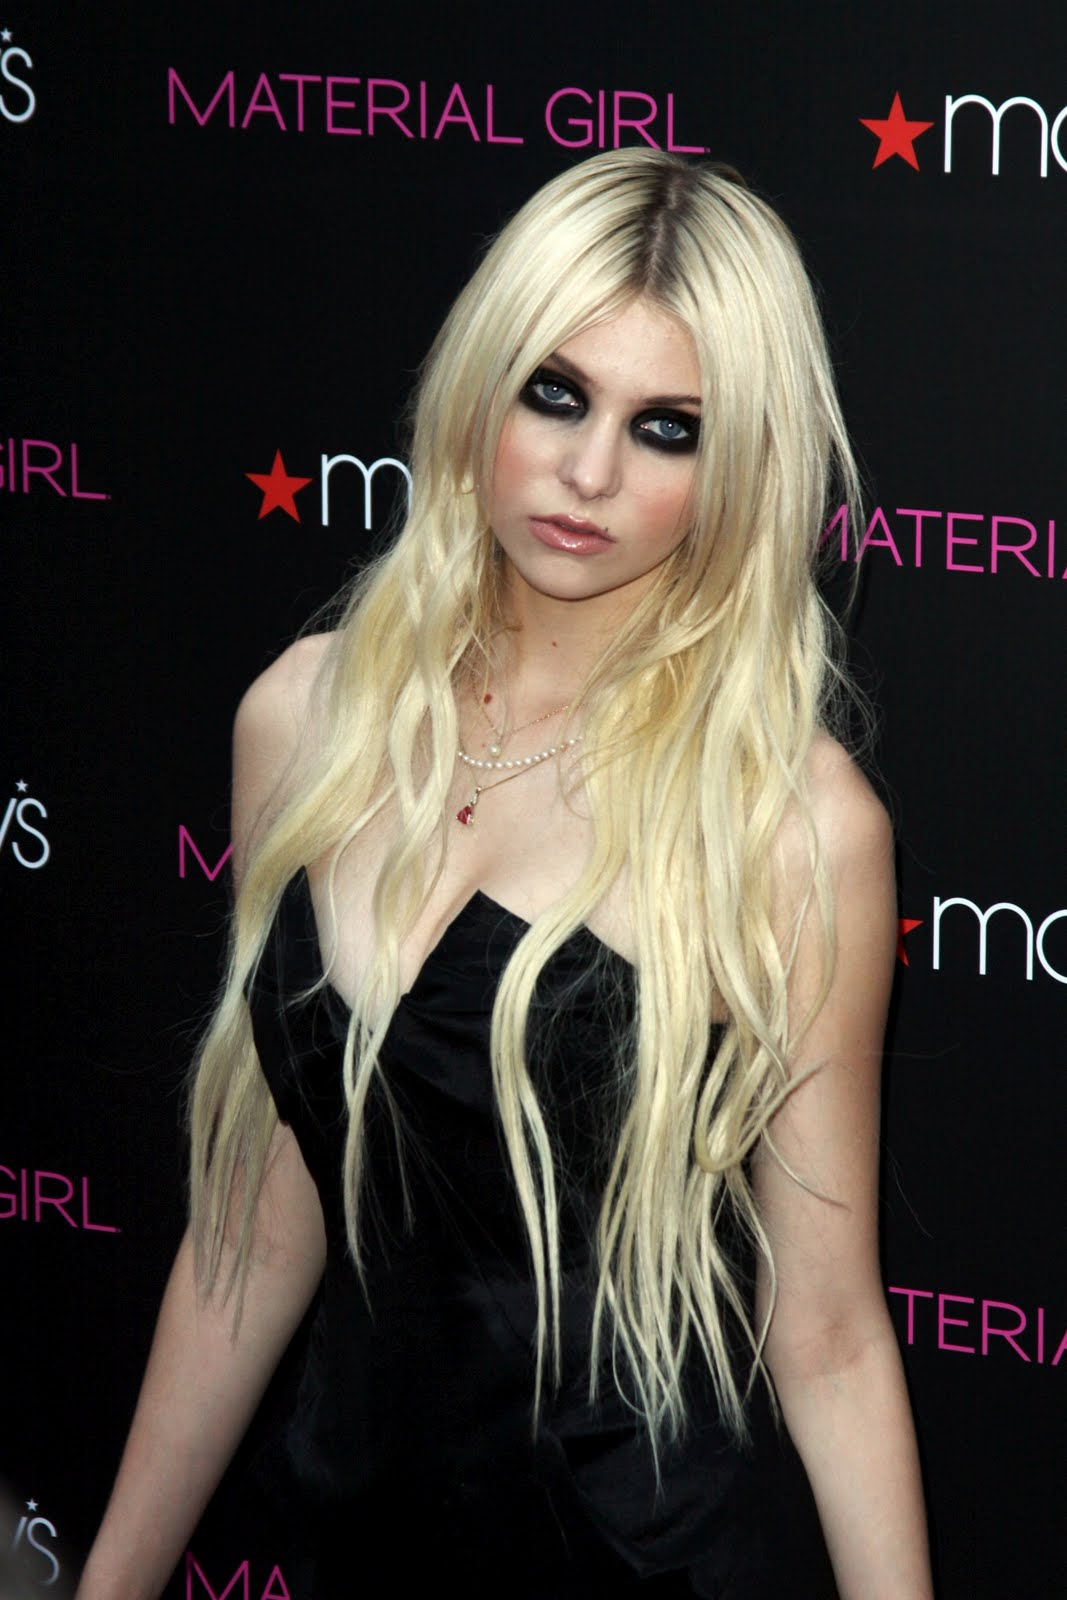 Cleavage Taylor Momsen naked (37 photo), Pussy, Hot, Boobs, braless 2006